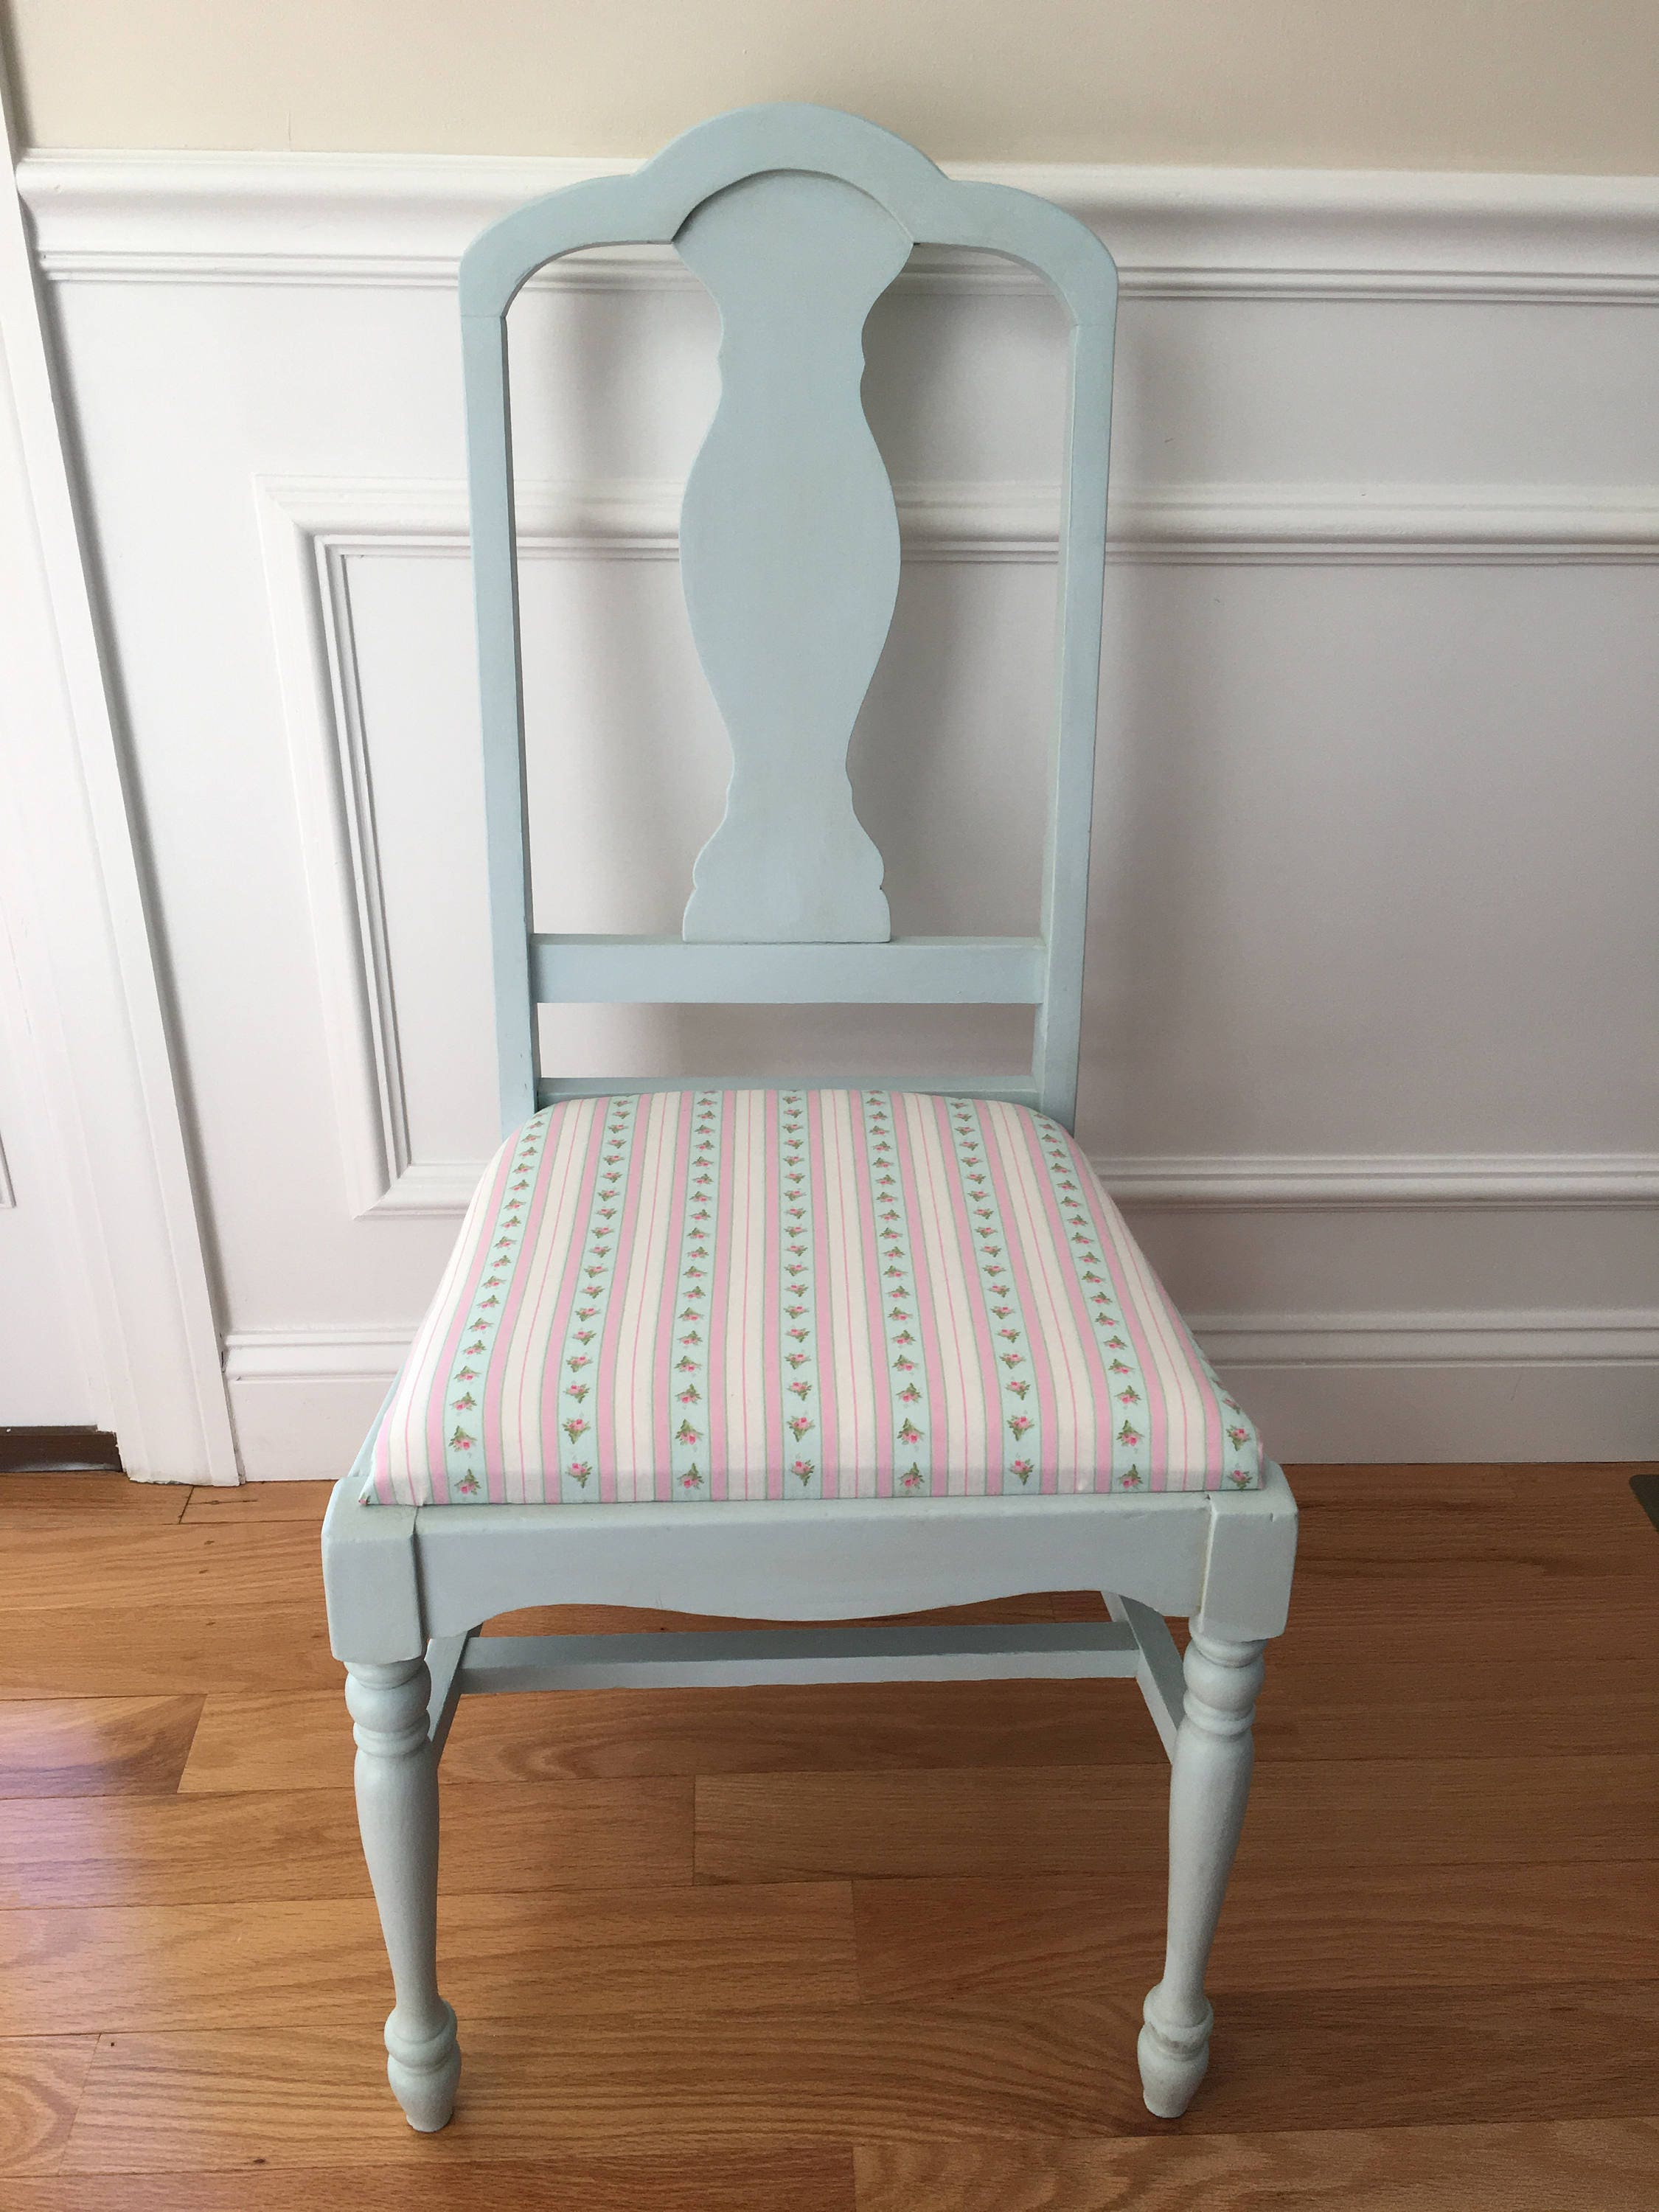 Fabulous Shabby Chic Chairs Shabby Chic Decor Vintage Chairs Antique Chairs Shabby Chairs Blue Shabby Chairs Home Decor Office Chairs Download Free Architecture Designs Terstmadebymaigaardcom